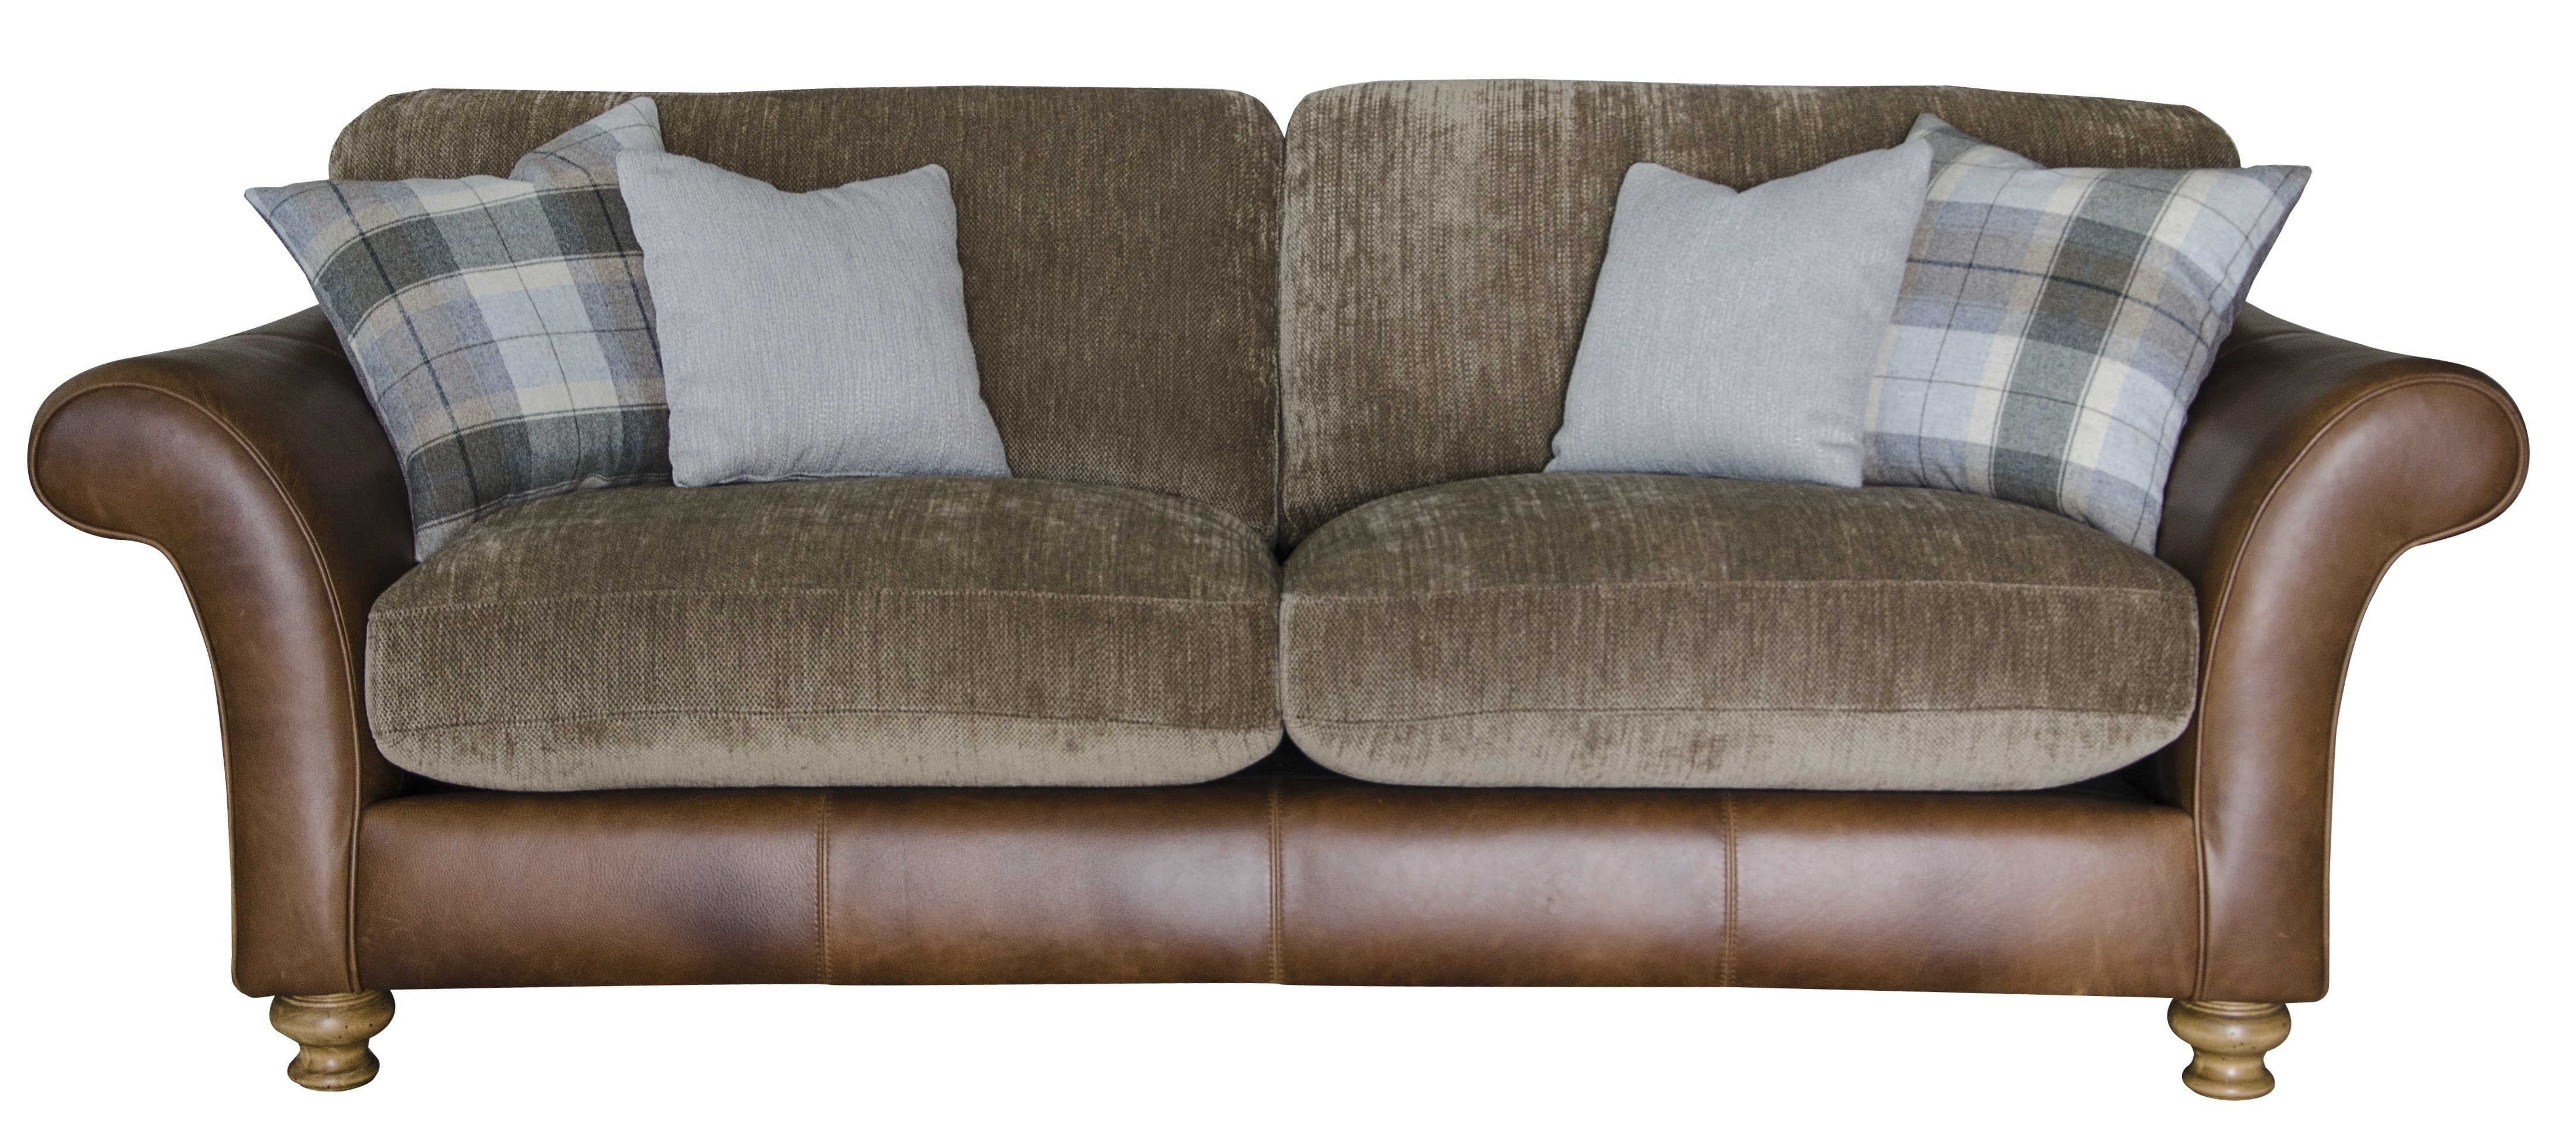 Well Liked Leather And Fabric Combination Sofas • Leather Sofa Pertaining To Leather And Cloth Sofas (View 3 of 20)